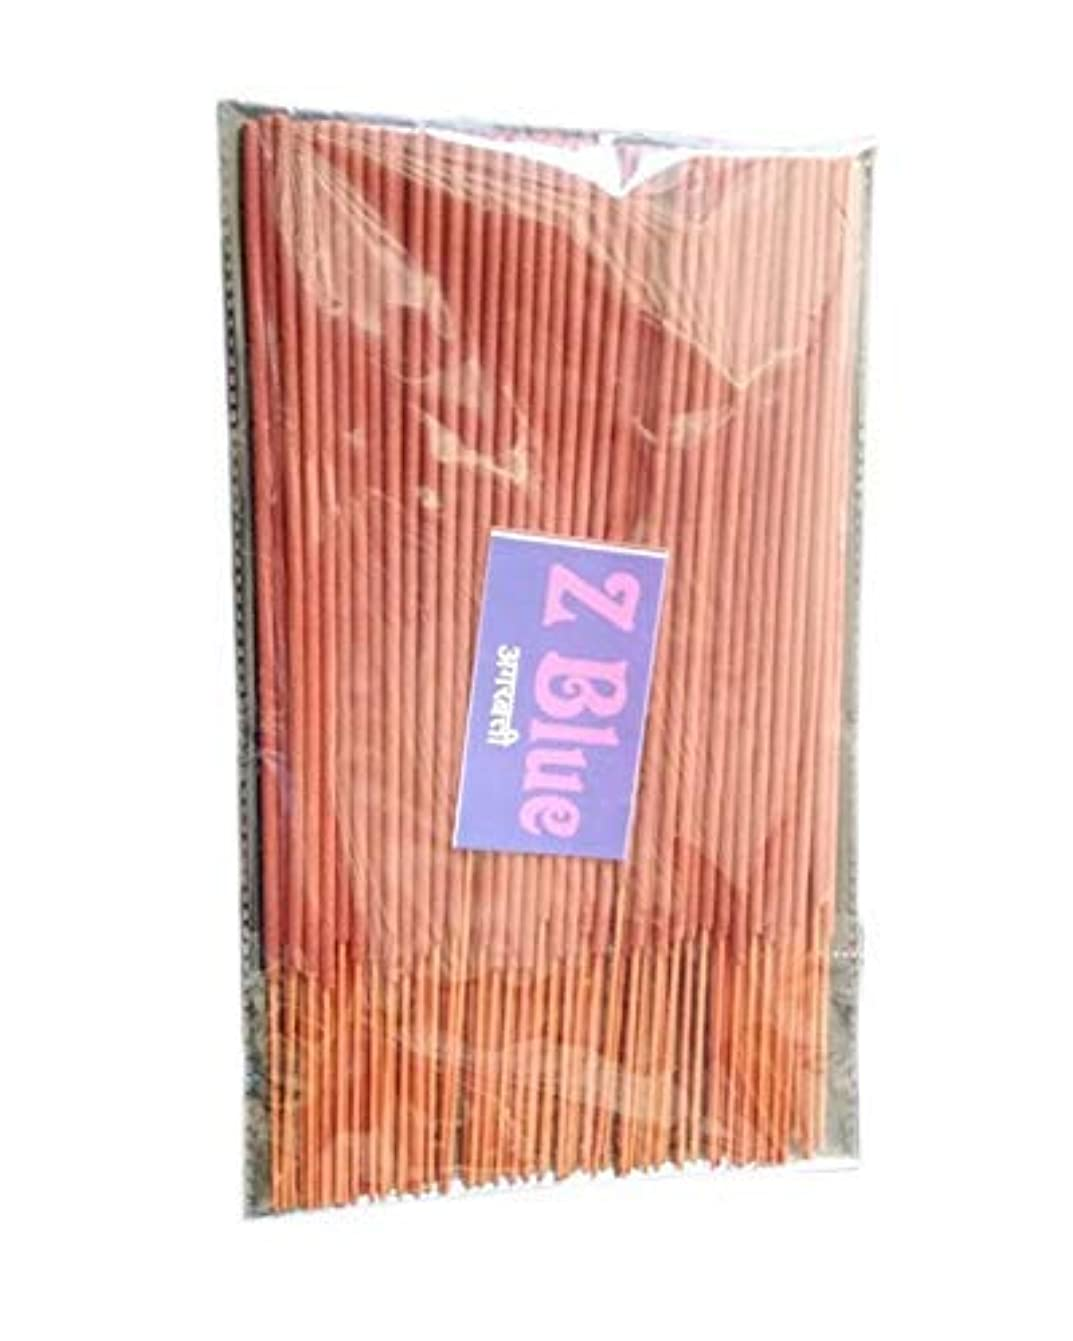 社会科発動機結果Darshan Z Blue Incense Sticks/Agarbatti (200 GM Pack)